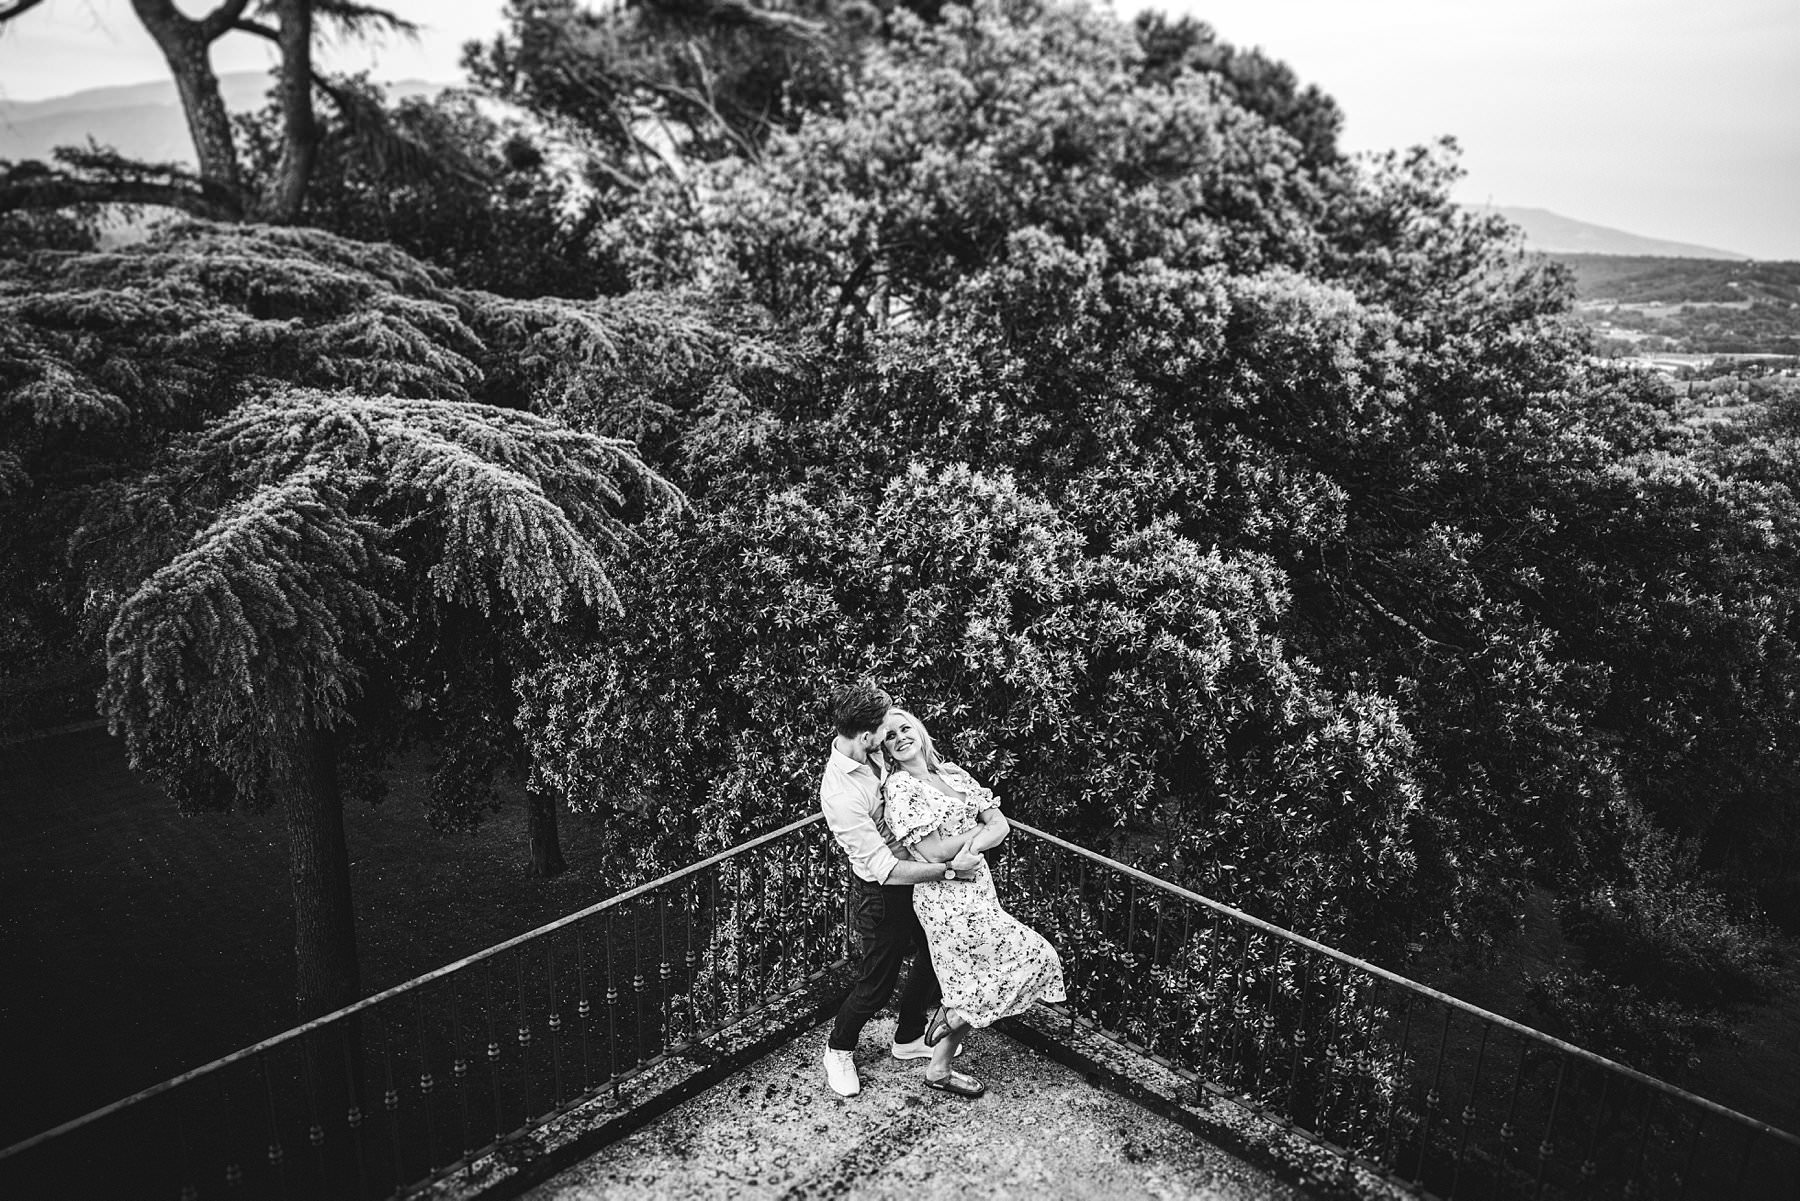 Creative couple portrait shoot at Poggio Tre Lune in the heart of Tuscany near Florence. Surprise proposal photo session